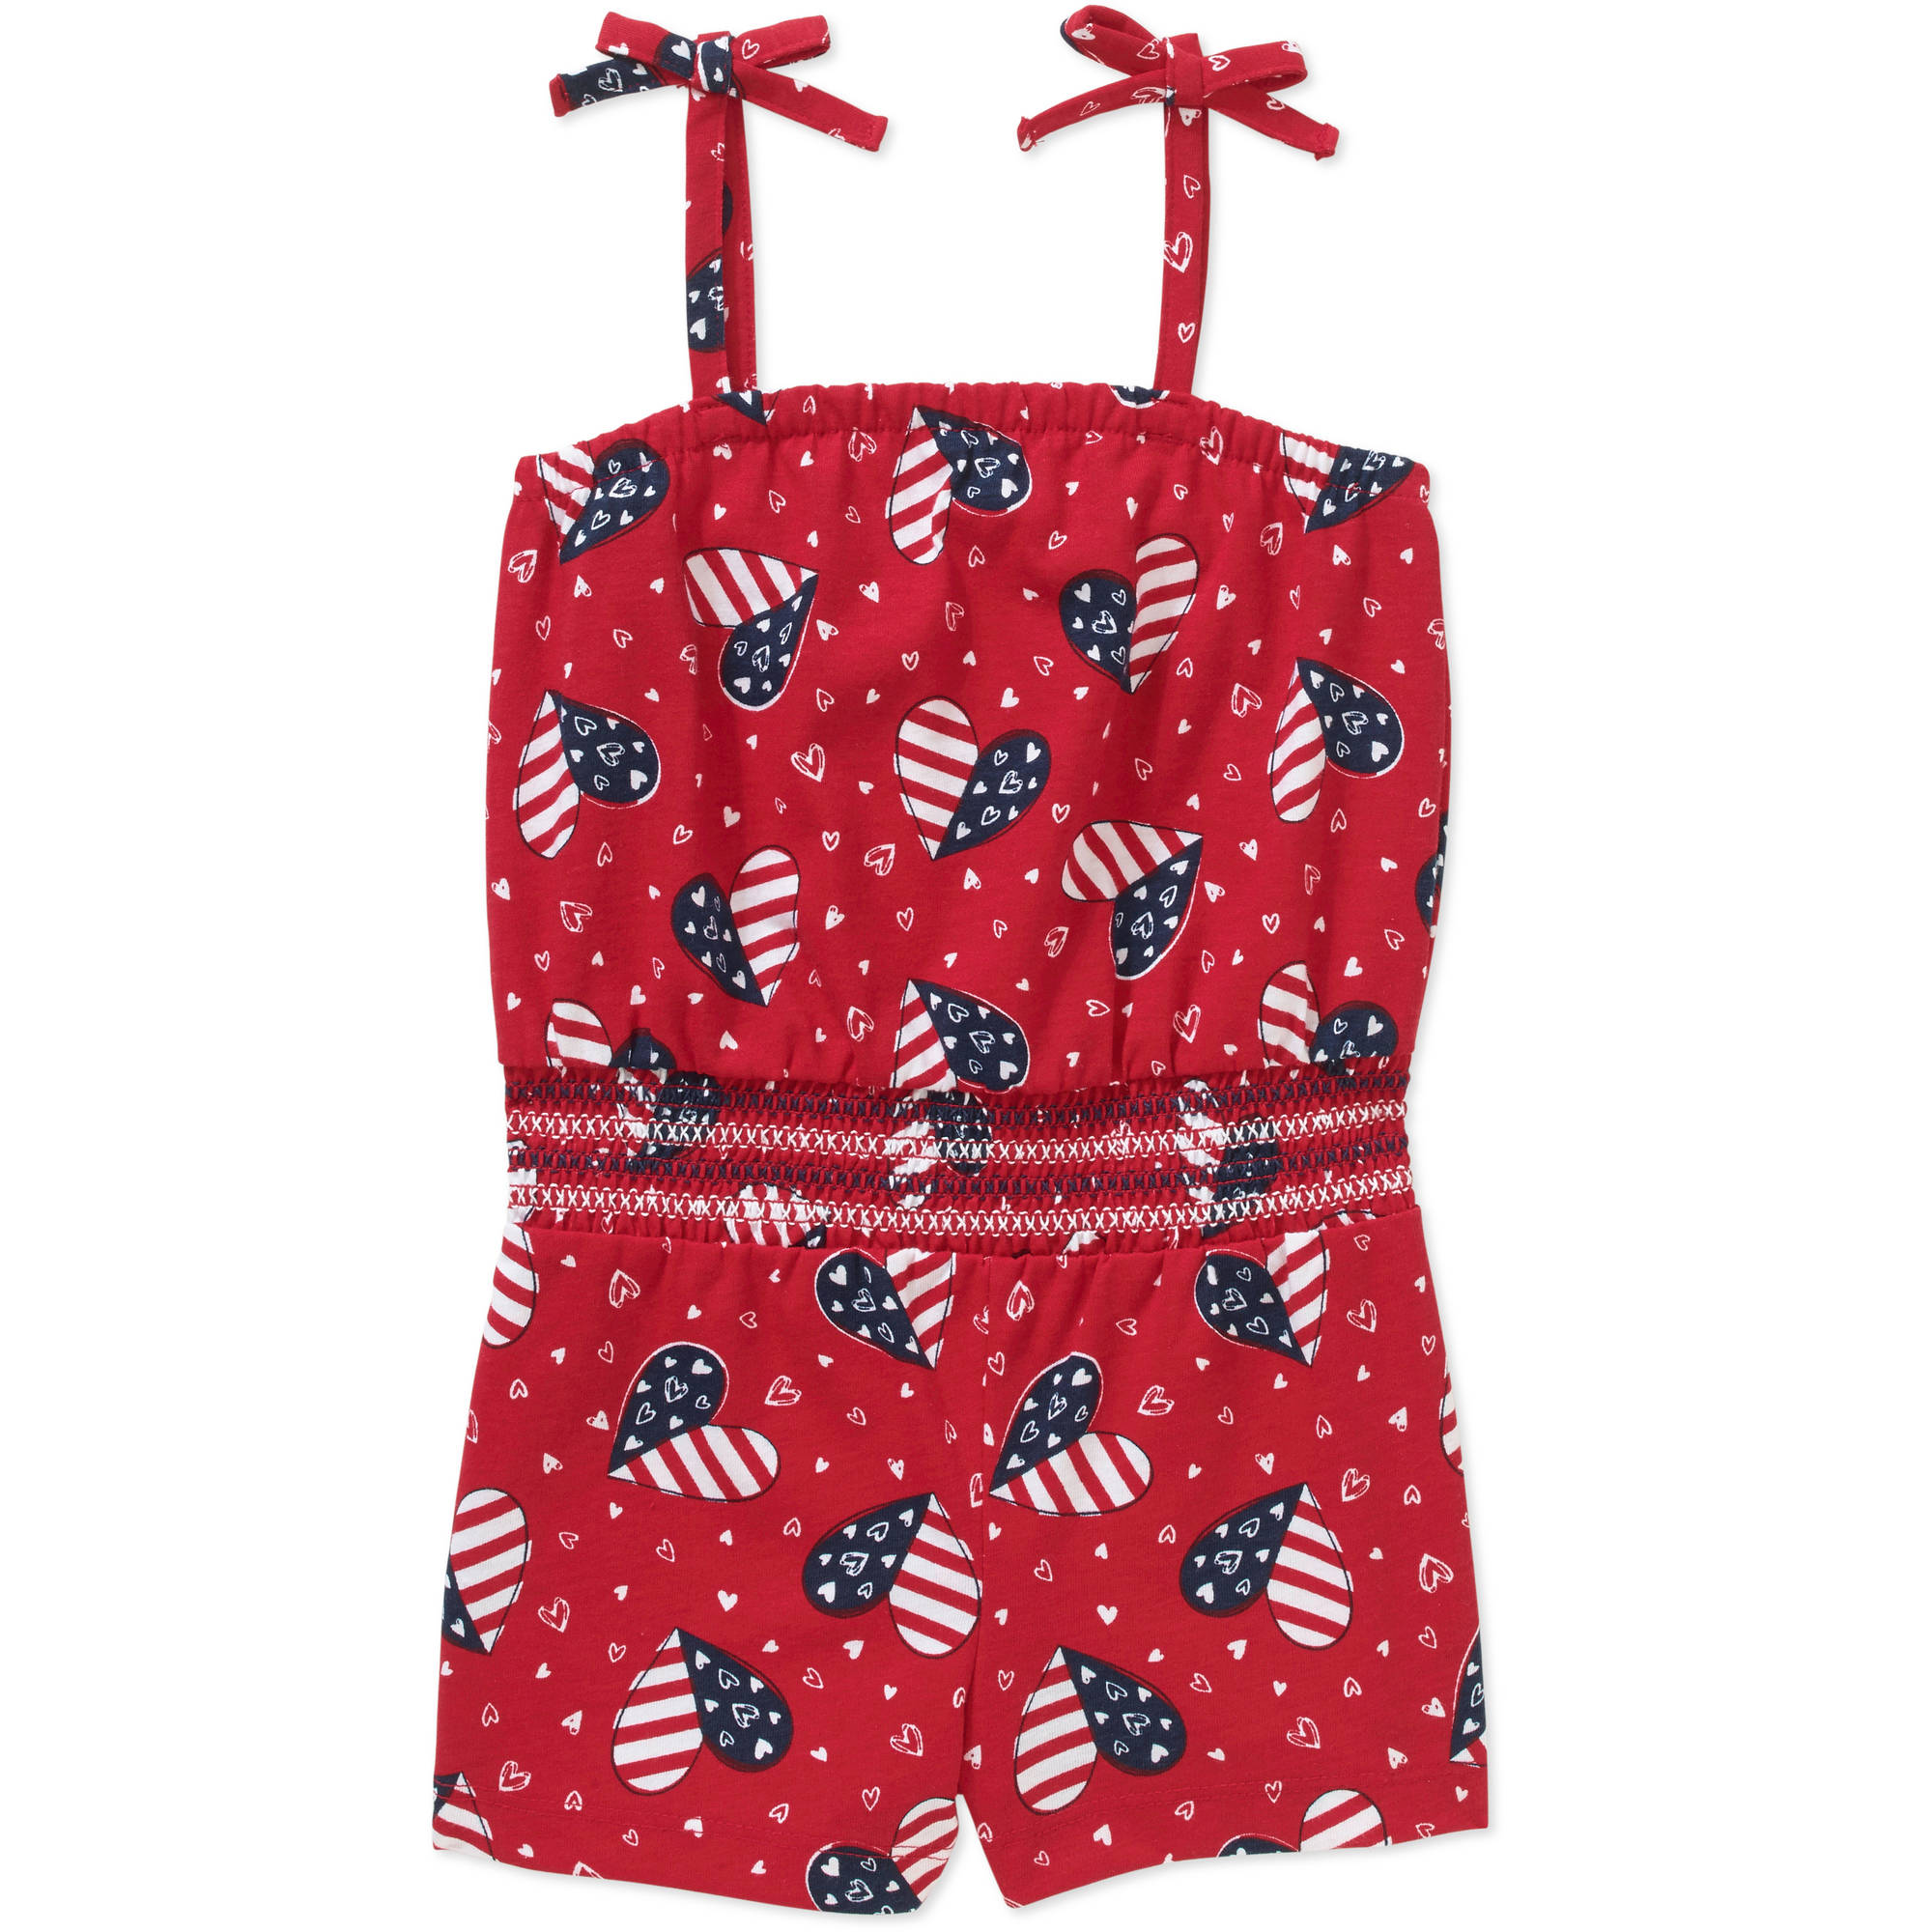 Healthtex Baby Toddler Girl Tie Top Knit Romper